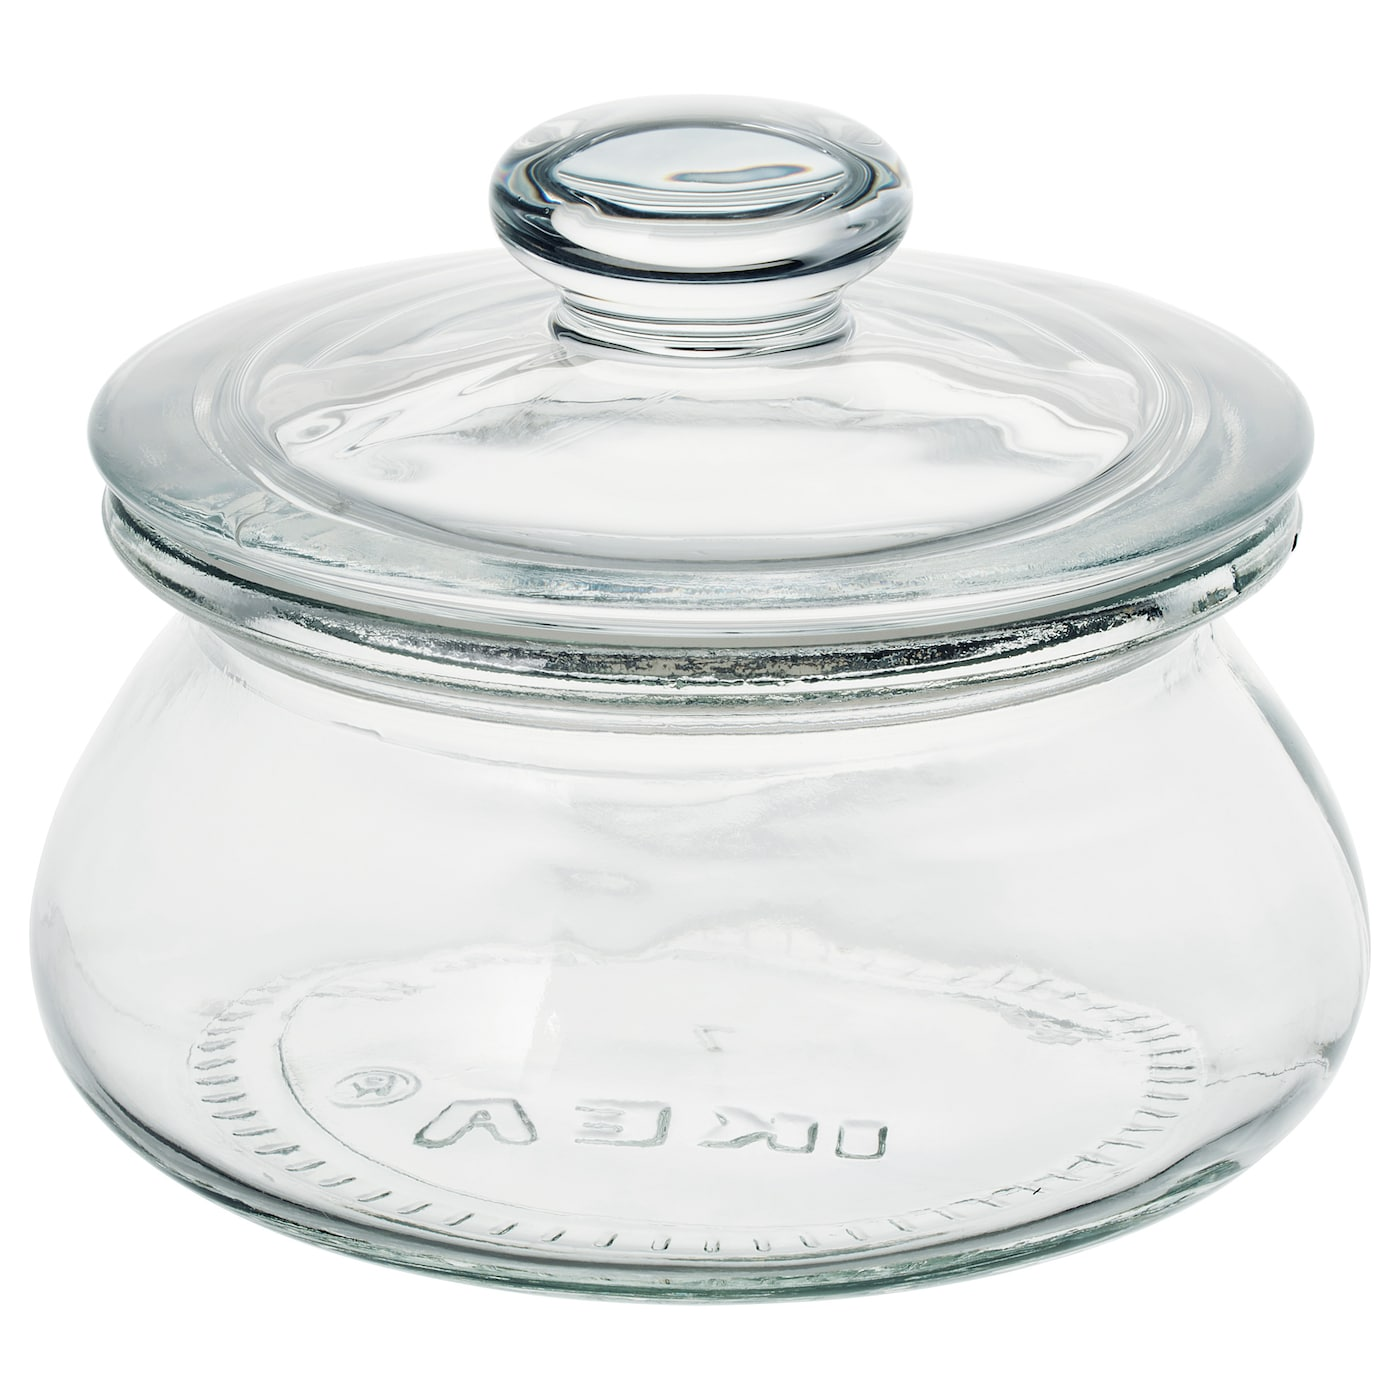 Mason Jars Buy Tea Coffee Sugar Canisters Online At Affordable Price In India Ikea